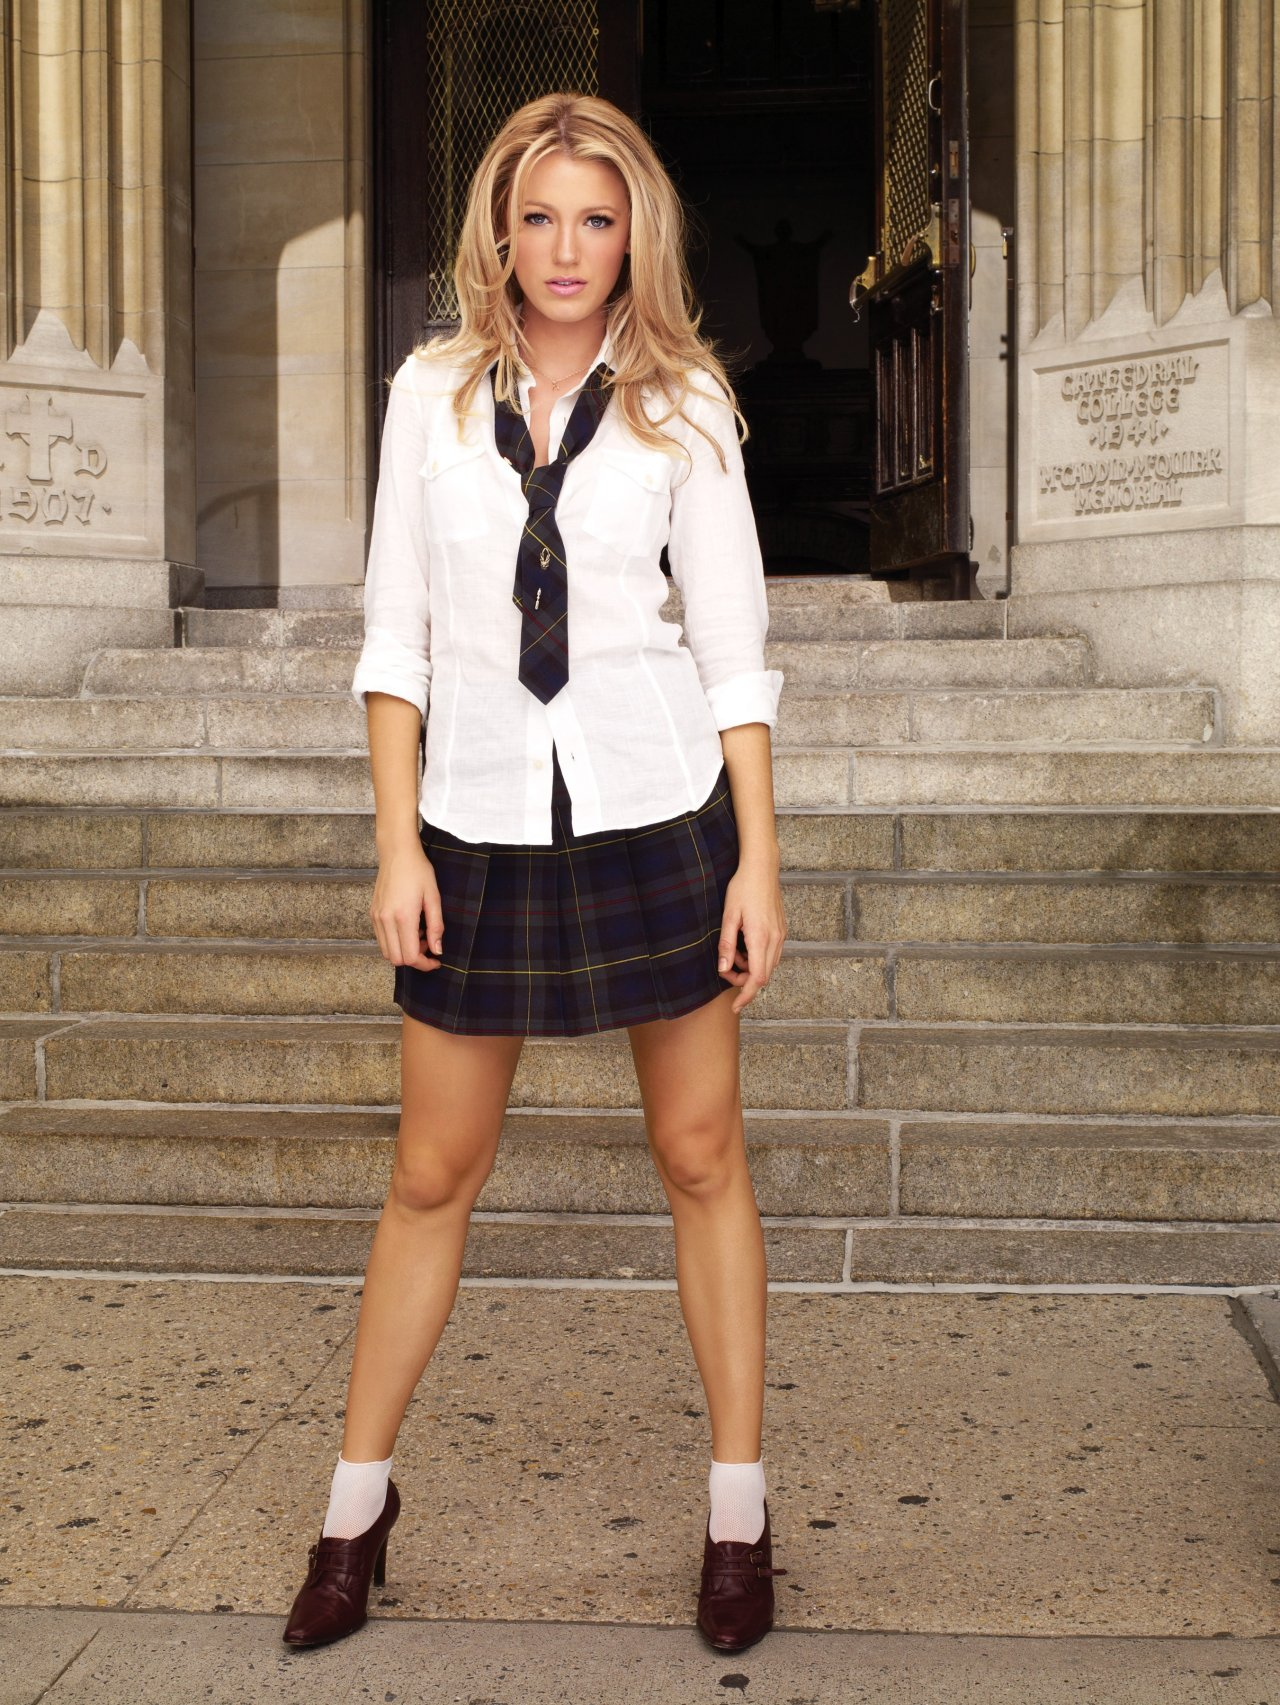 Blake Lively In School Dress Sheclick Com